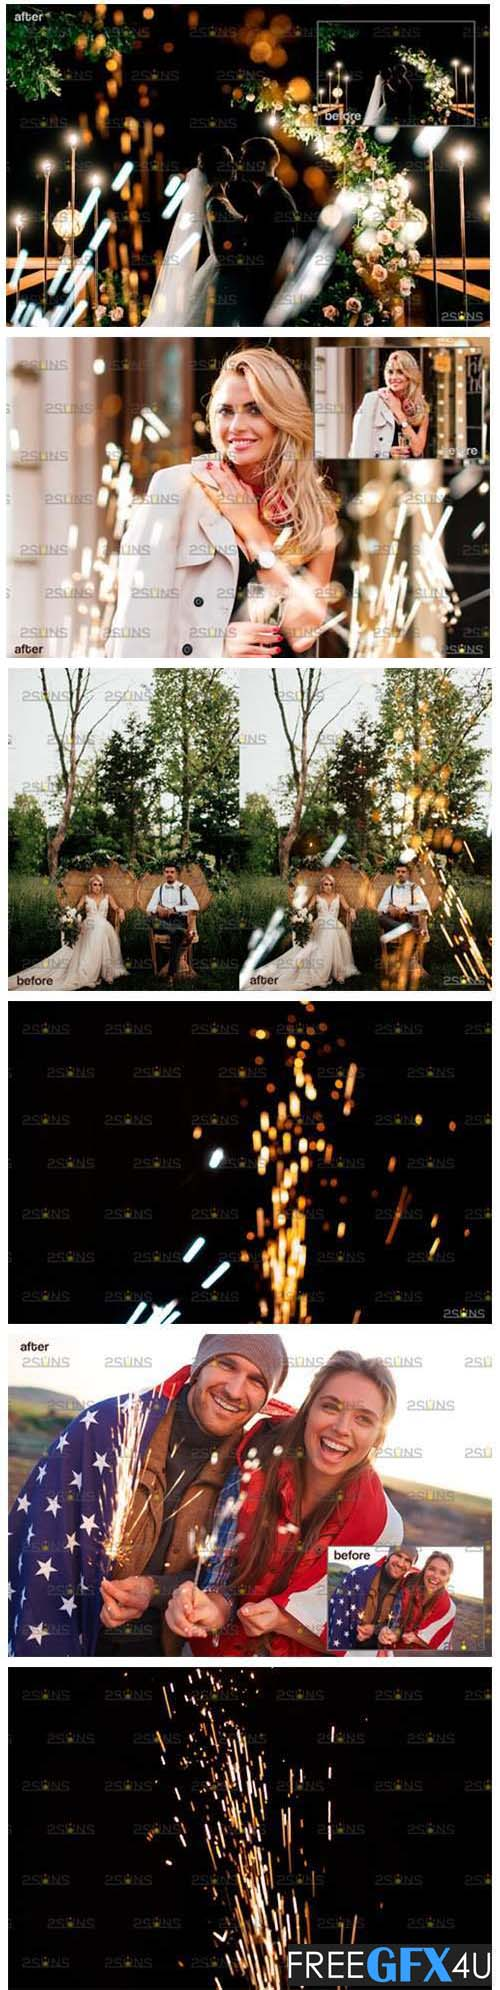 Wedding Sparkler Overlay & Photoshop